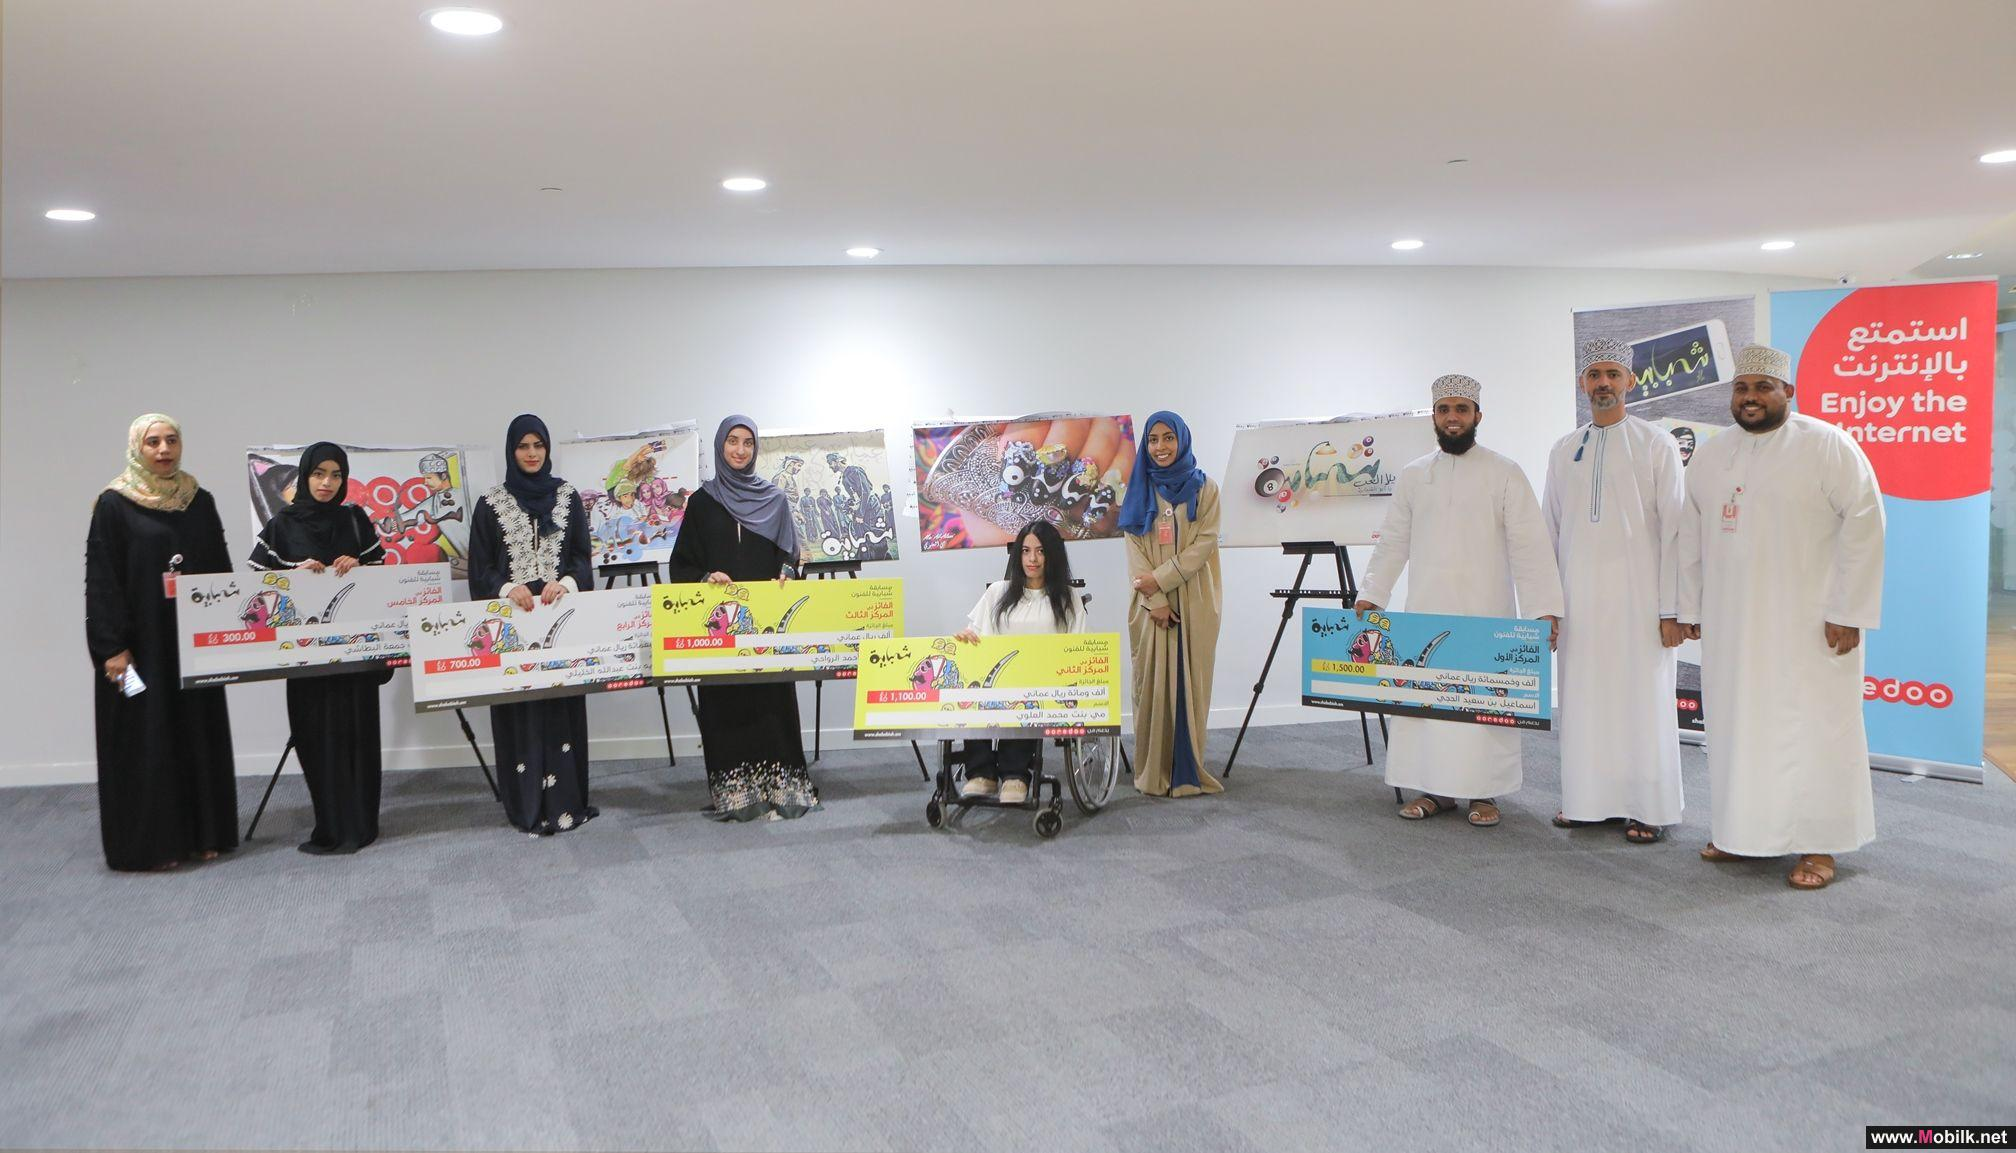 Ooredoo Captivates Oman's Talented Youth with Shababiah Art Competition